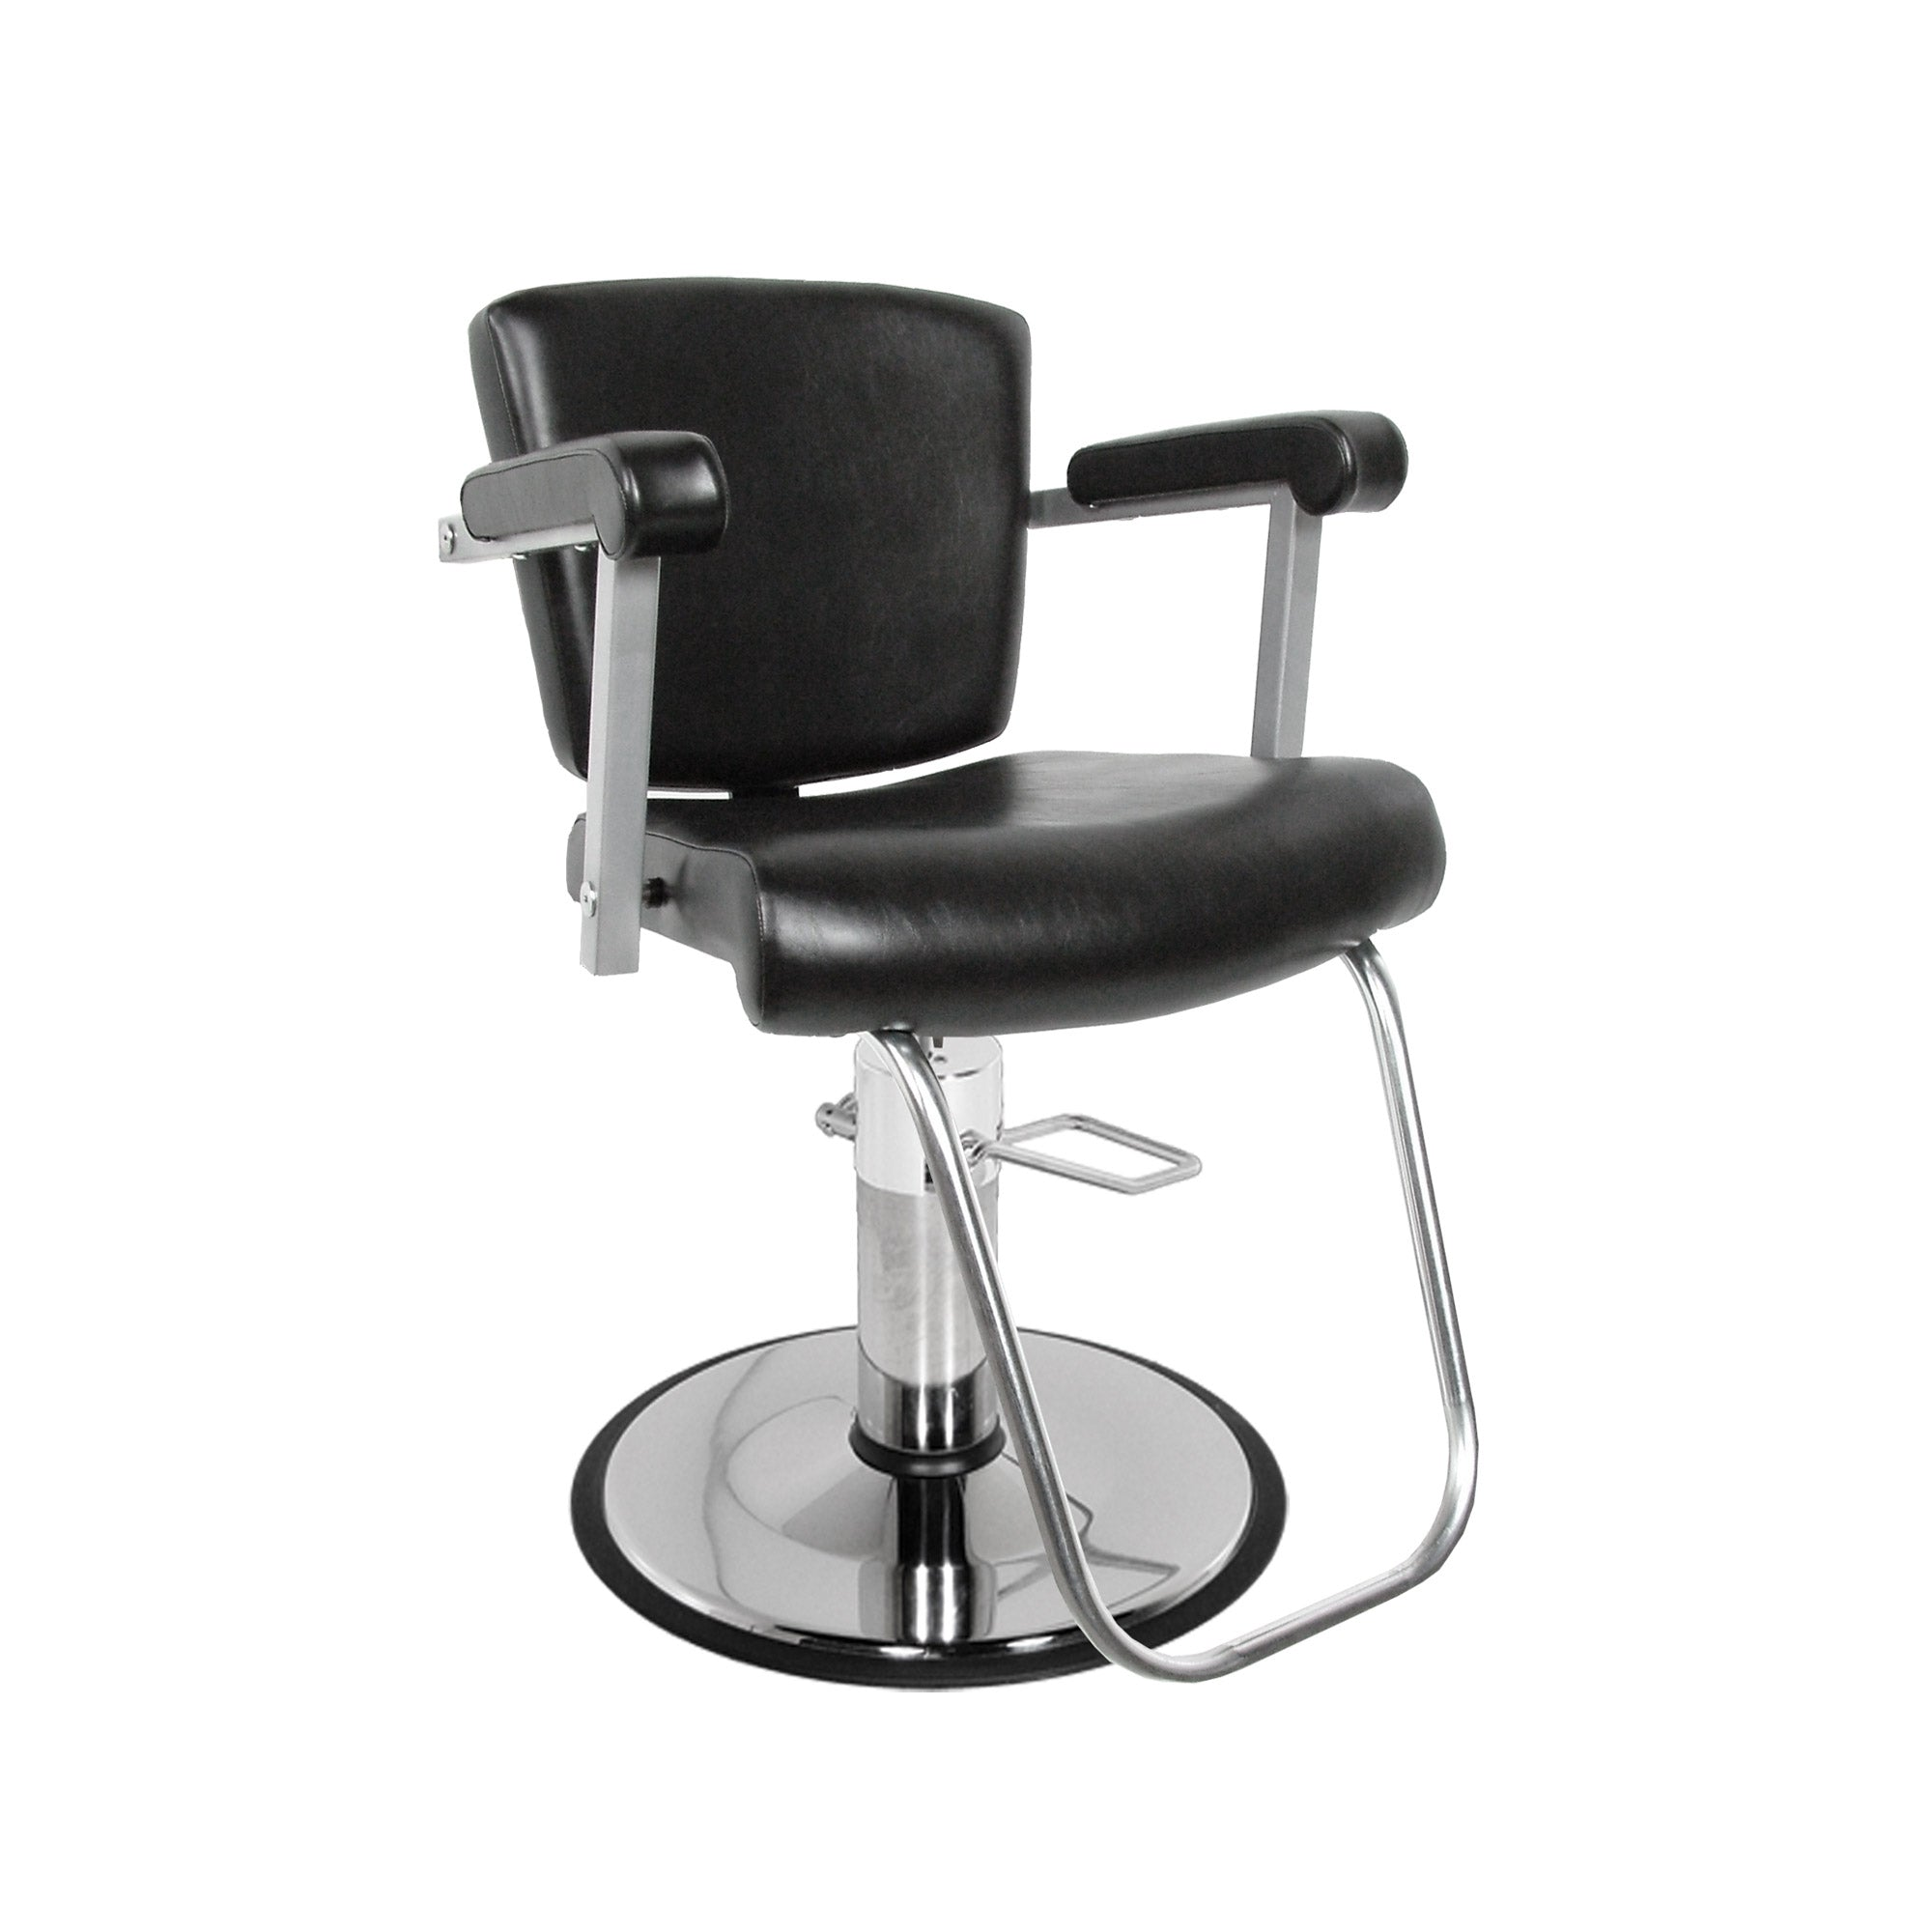 Vittoria Styling Chair - Collins